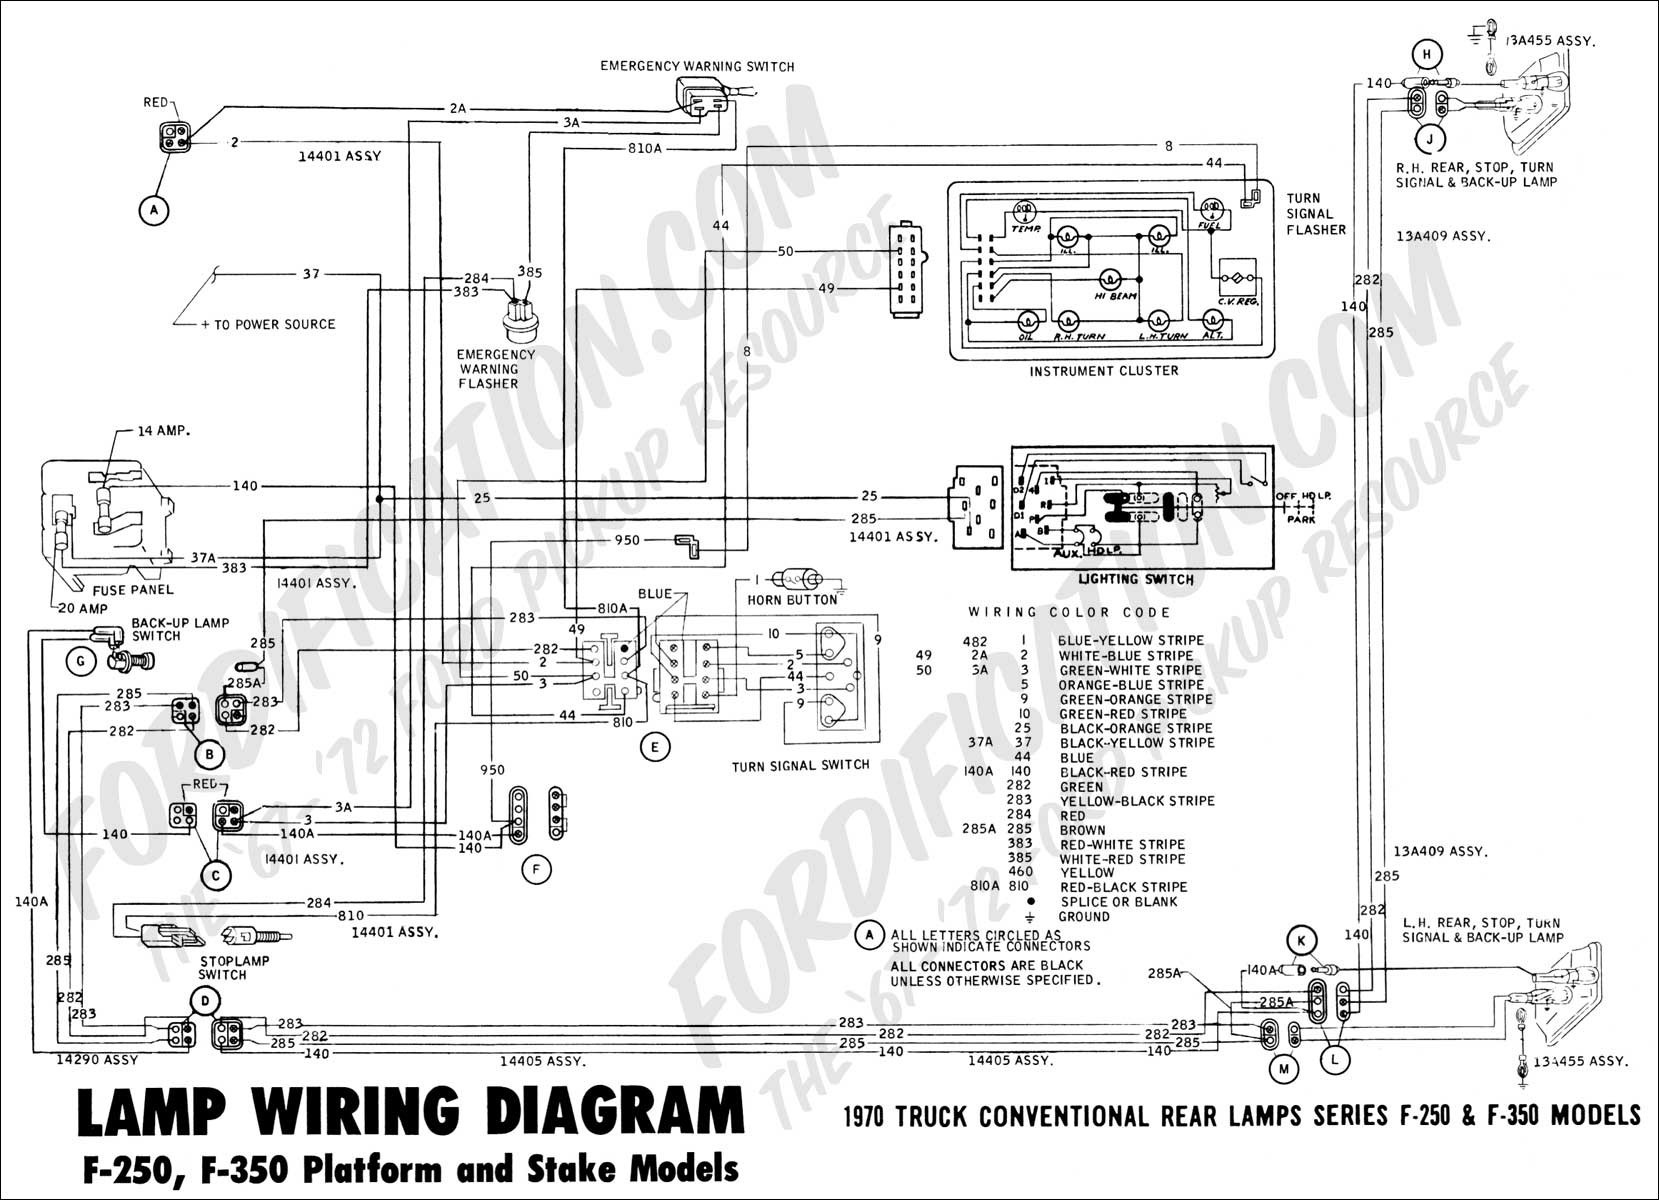 2006 Ford F 250 Van Fuse Diagram Wiring Library 2000 E250 F250 Info Of Tail Related Post